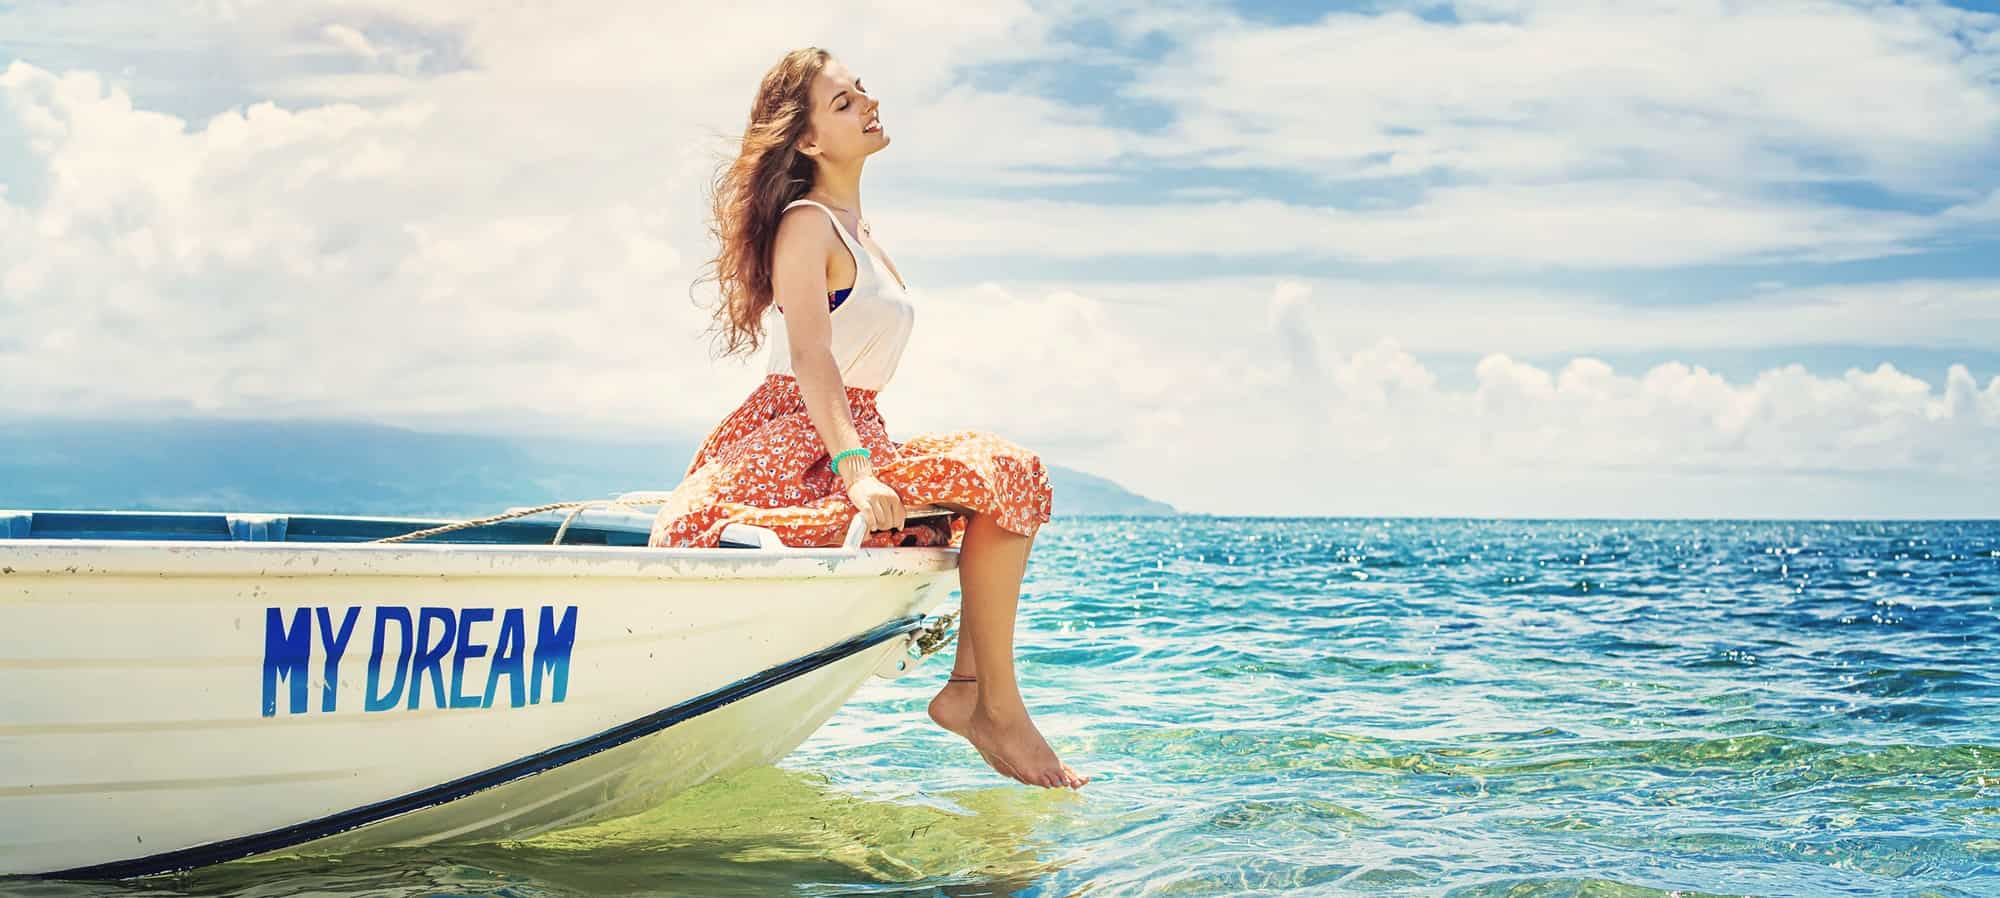 """woman sitting on edge of boat named """"MY DREAM"""" representing goal setting and dreaming of the future"""